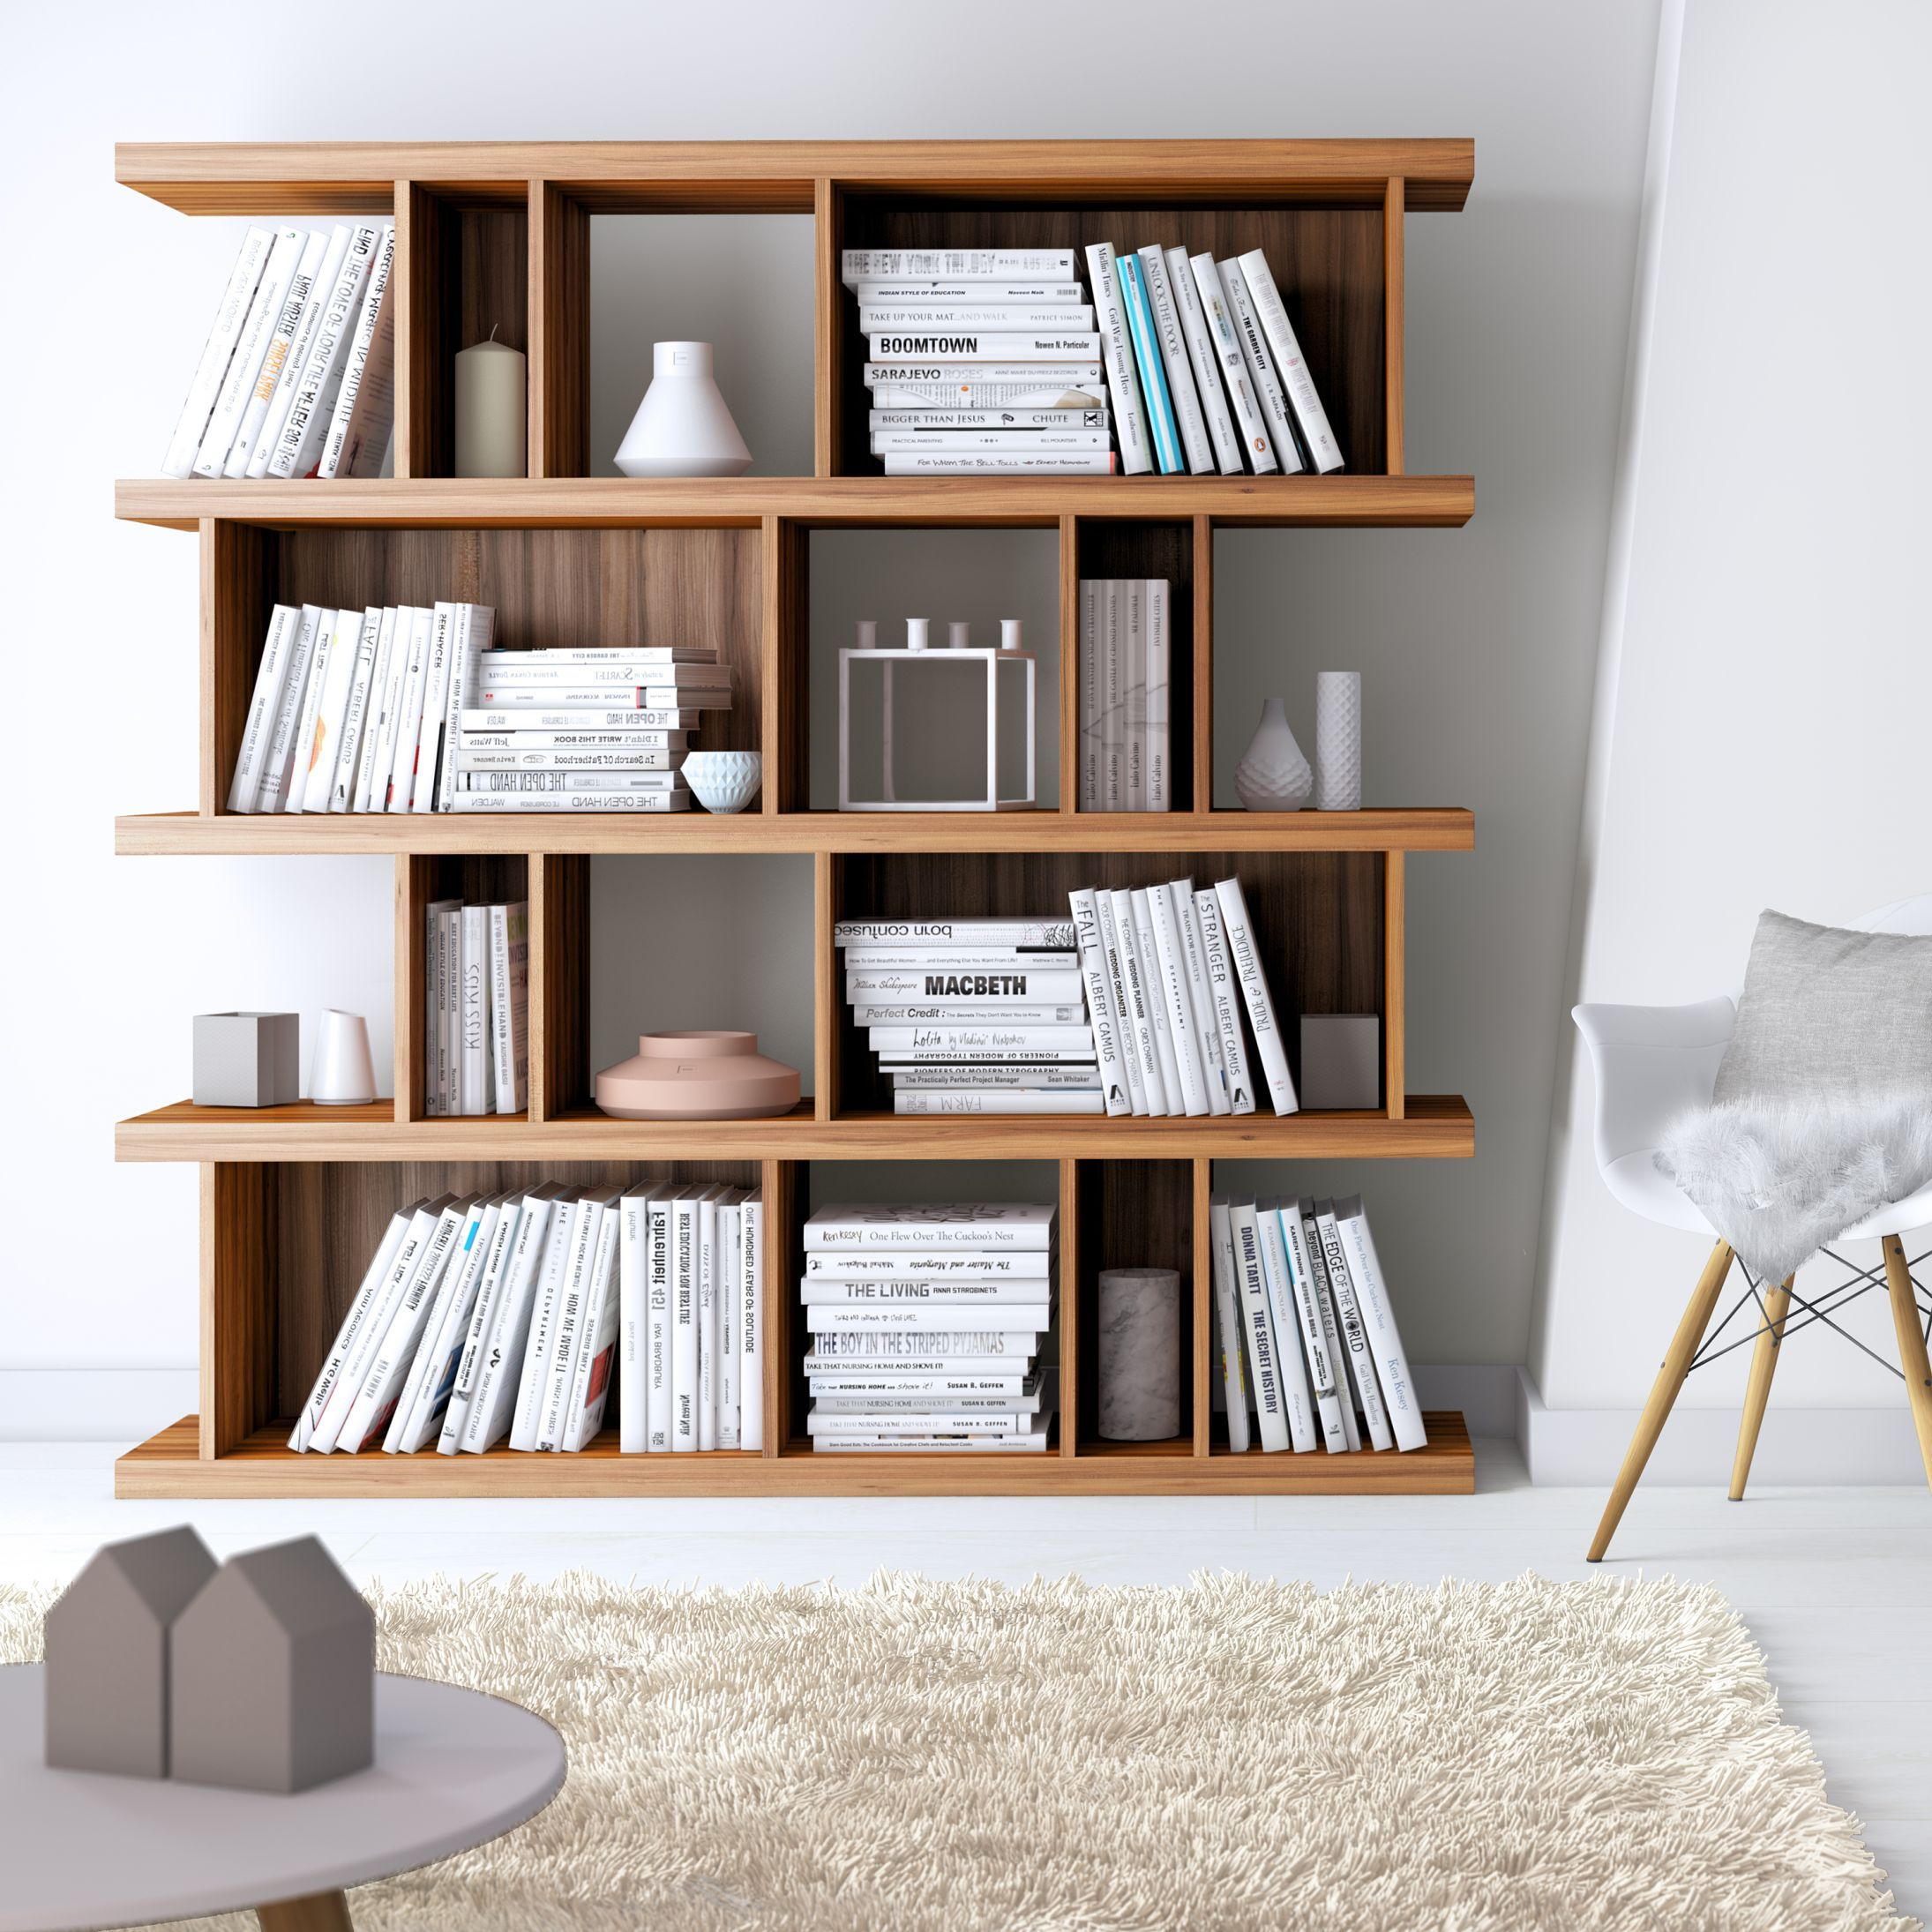 Pin By Reham Hany On Open Shelving: Mid Century Design, Mid Century And Storage